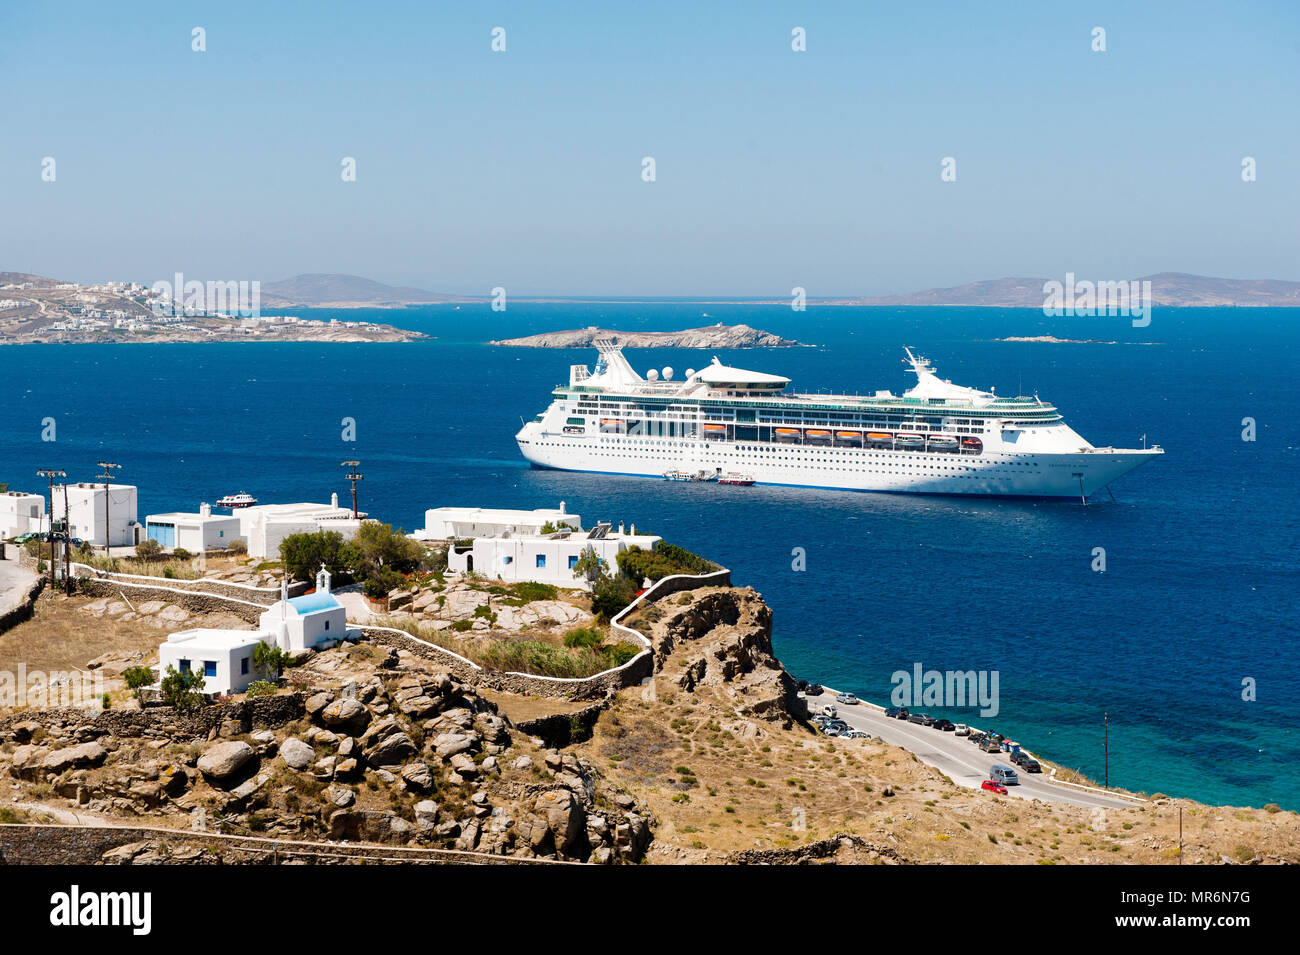 Greece: Mykonos. 2012/06/08 Cruise in the Cyclades MS Grandeur of the Seas, cruise ship owned and operated by Royal Caribbean International, lying at  - Stock Image